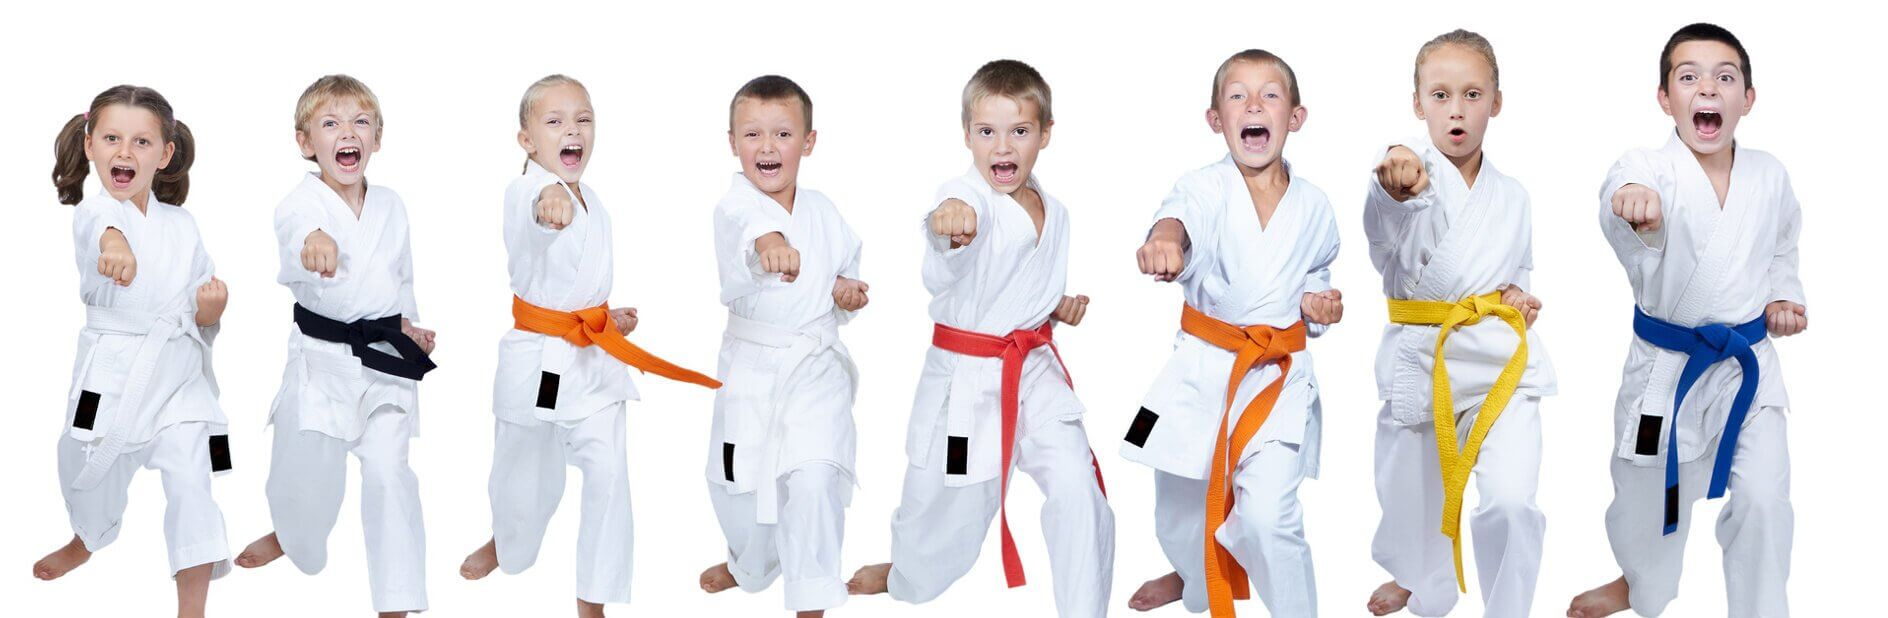 School of Martial Arts for Children